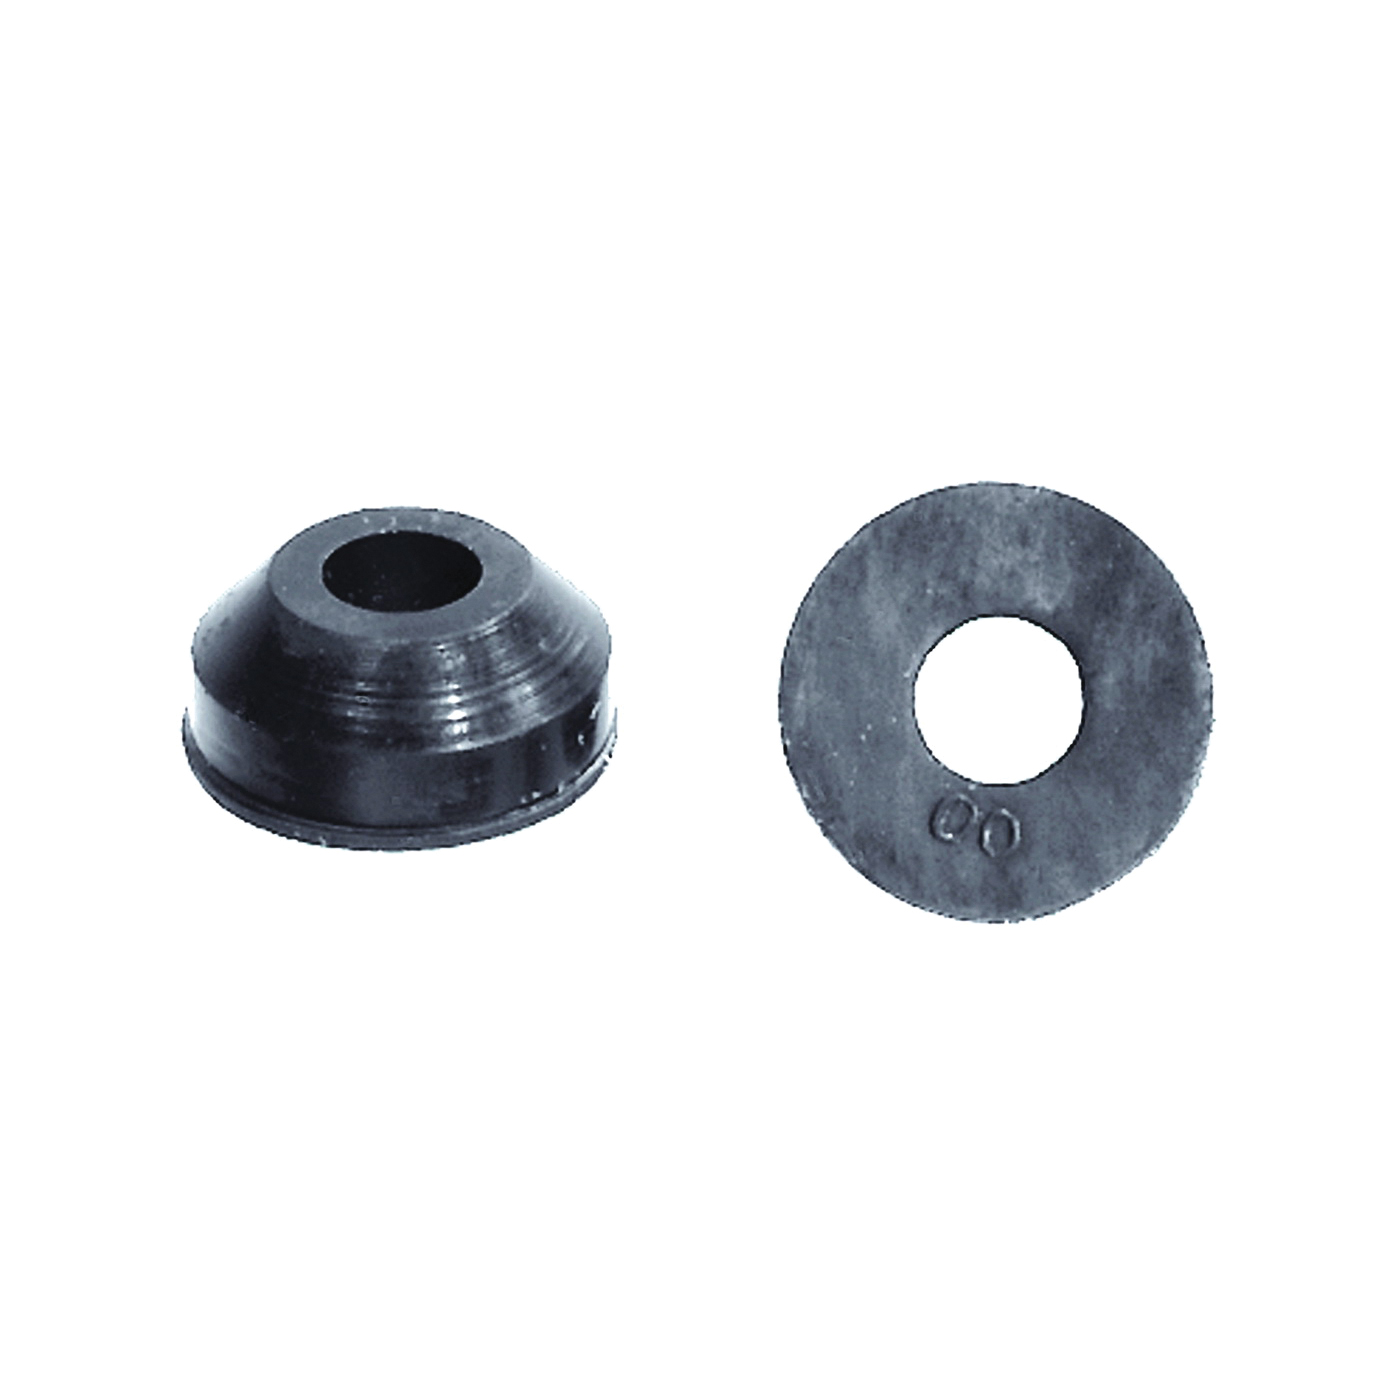 Picture of Danco 35090B Faucet Washer, #00, 1/2 in Dia, Rubber